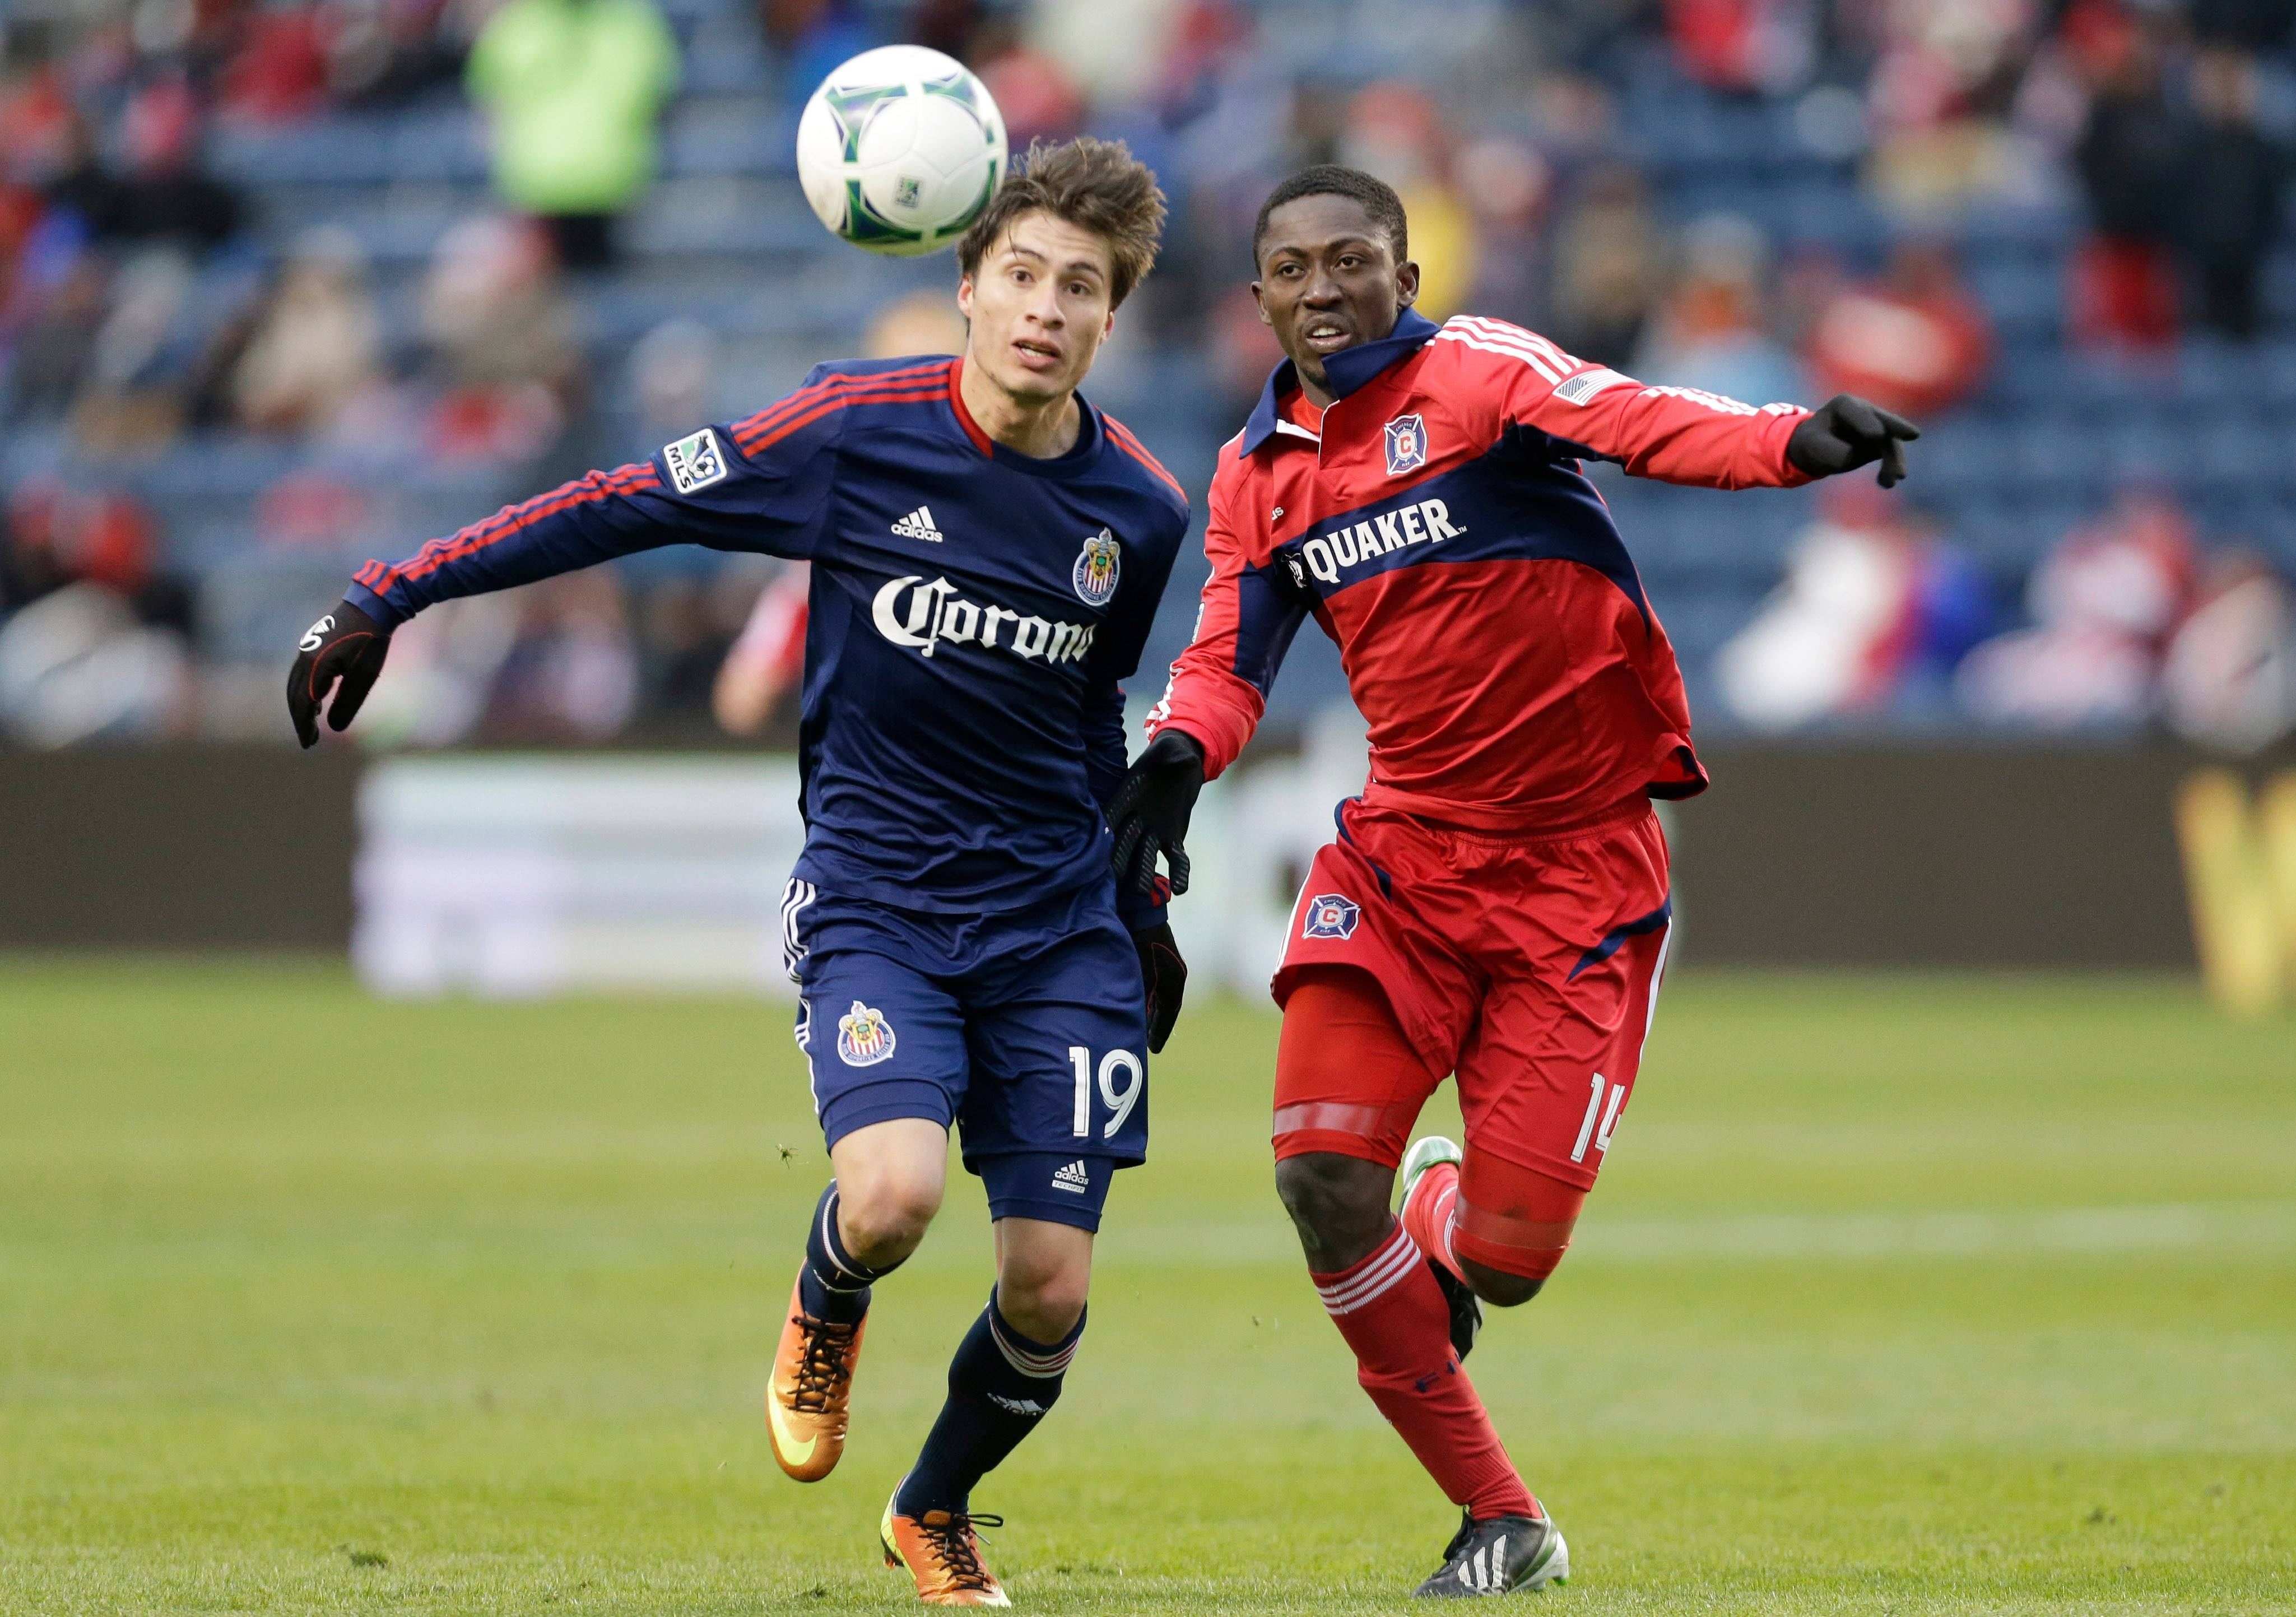 Chicago Fire forward Patrick Nyarko suffered a torn ACL and sprained MCL in his right knee Saturday that will sideline him 6-8 months.